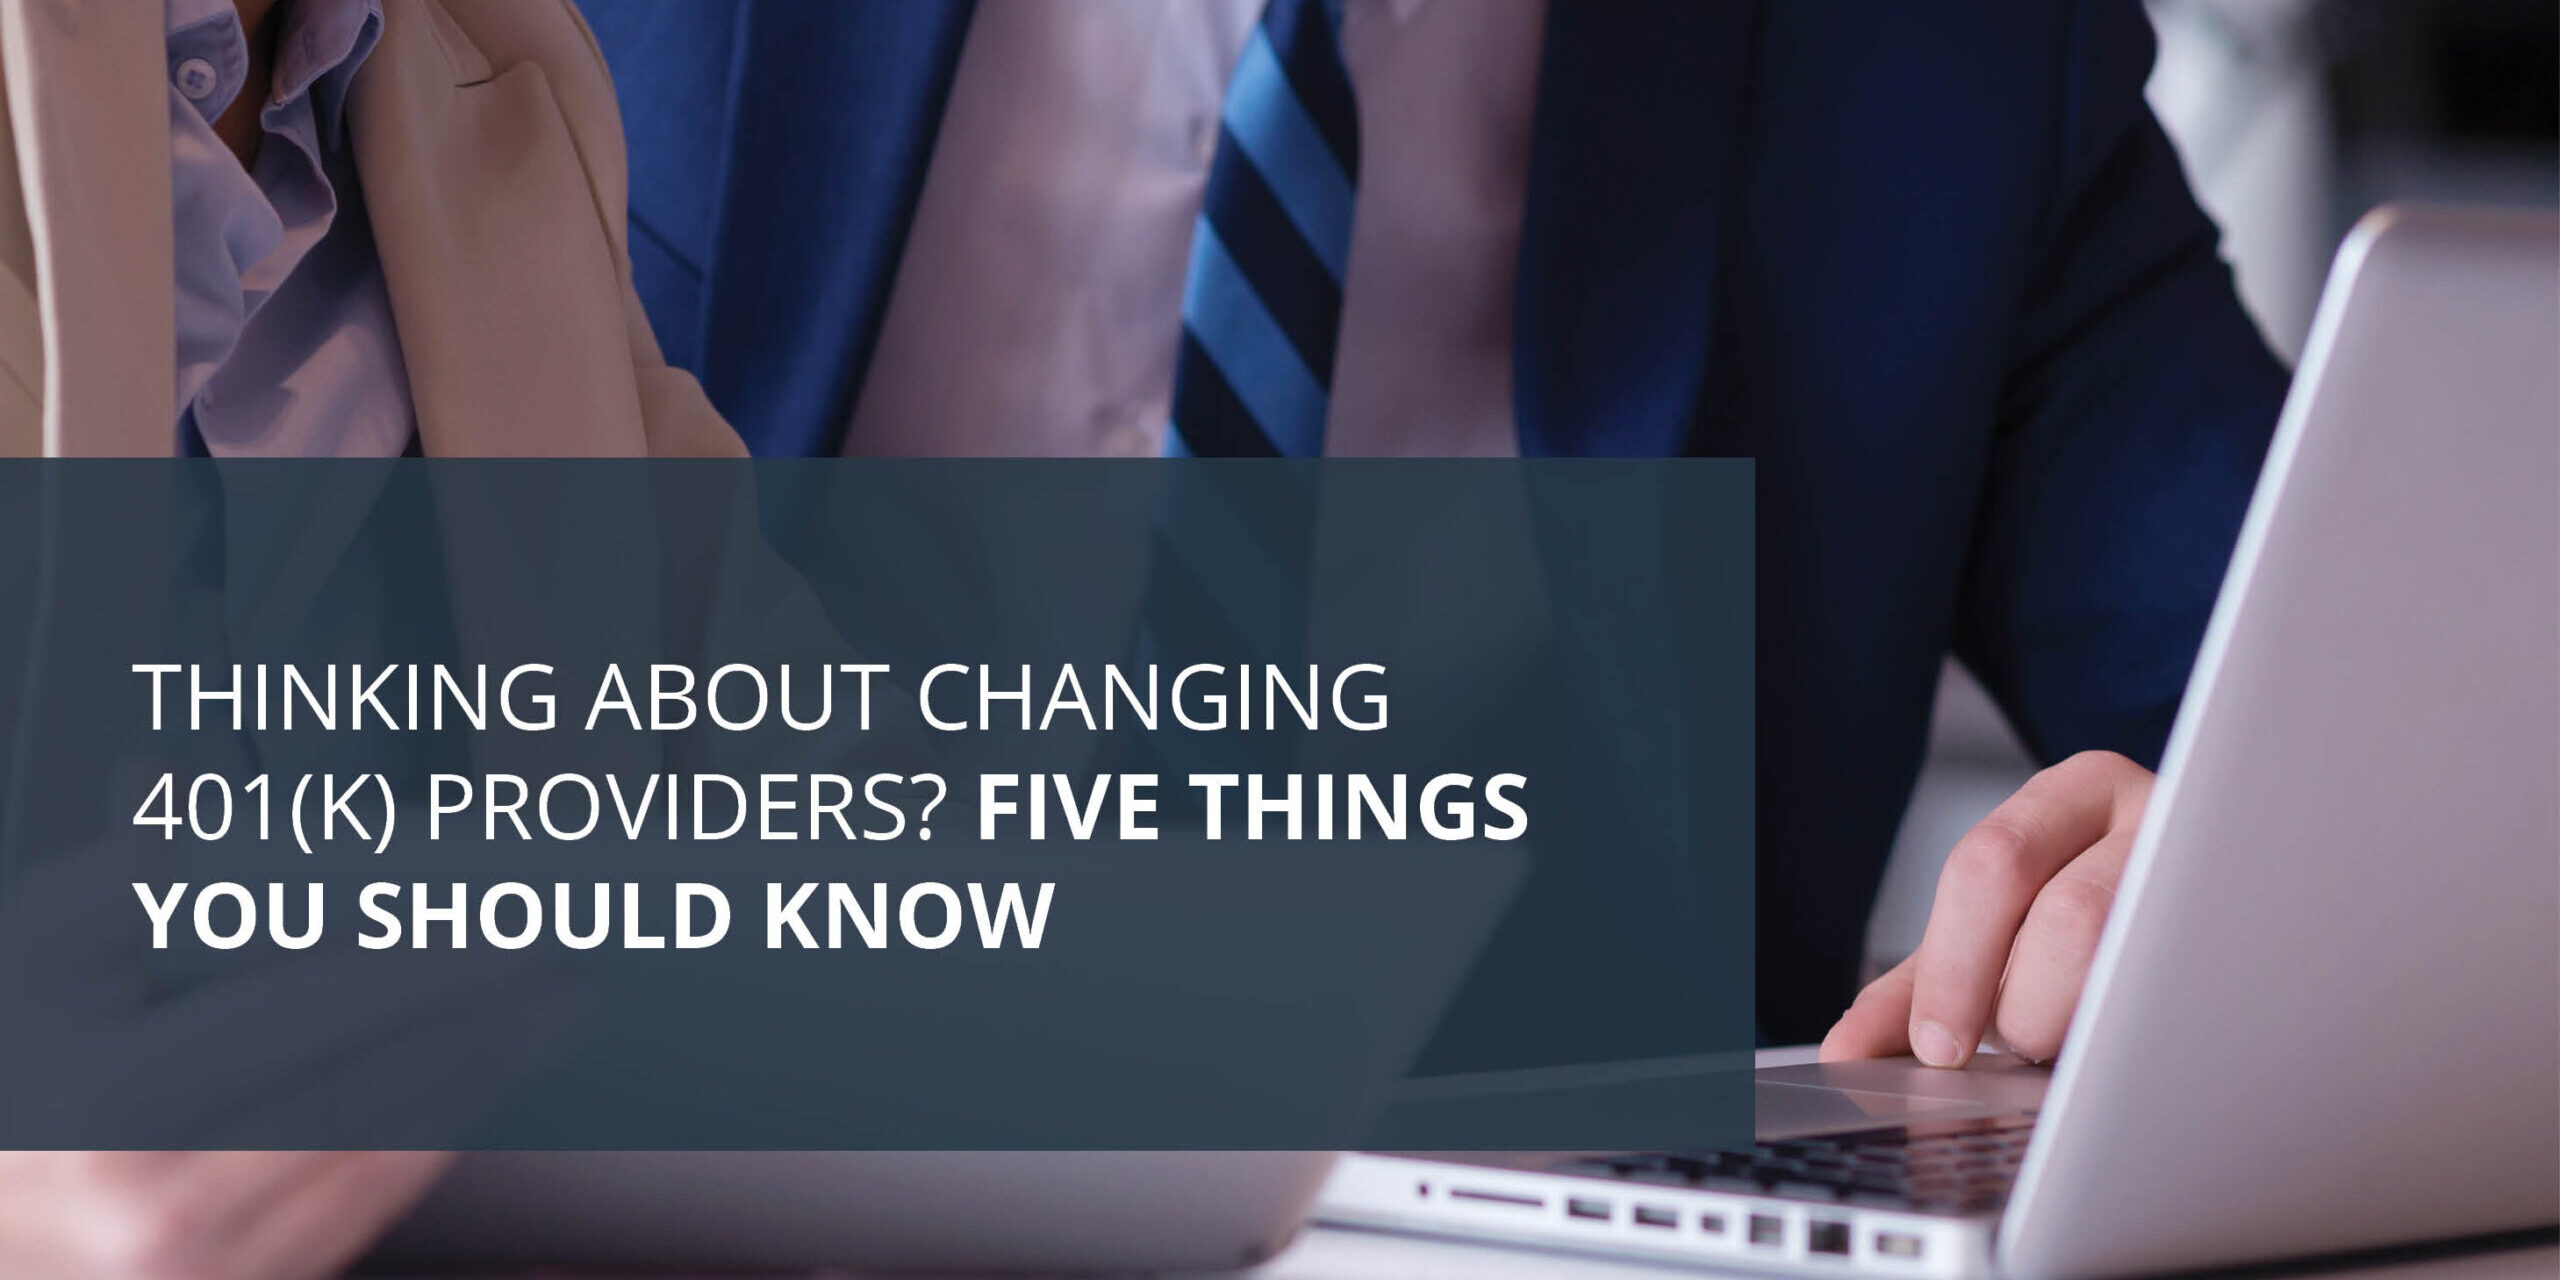 Headline Image - Thinking About Changing 401(k) Providers; Five Things You Should Know